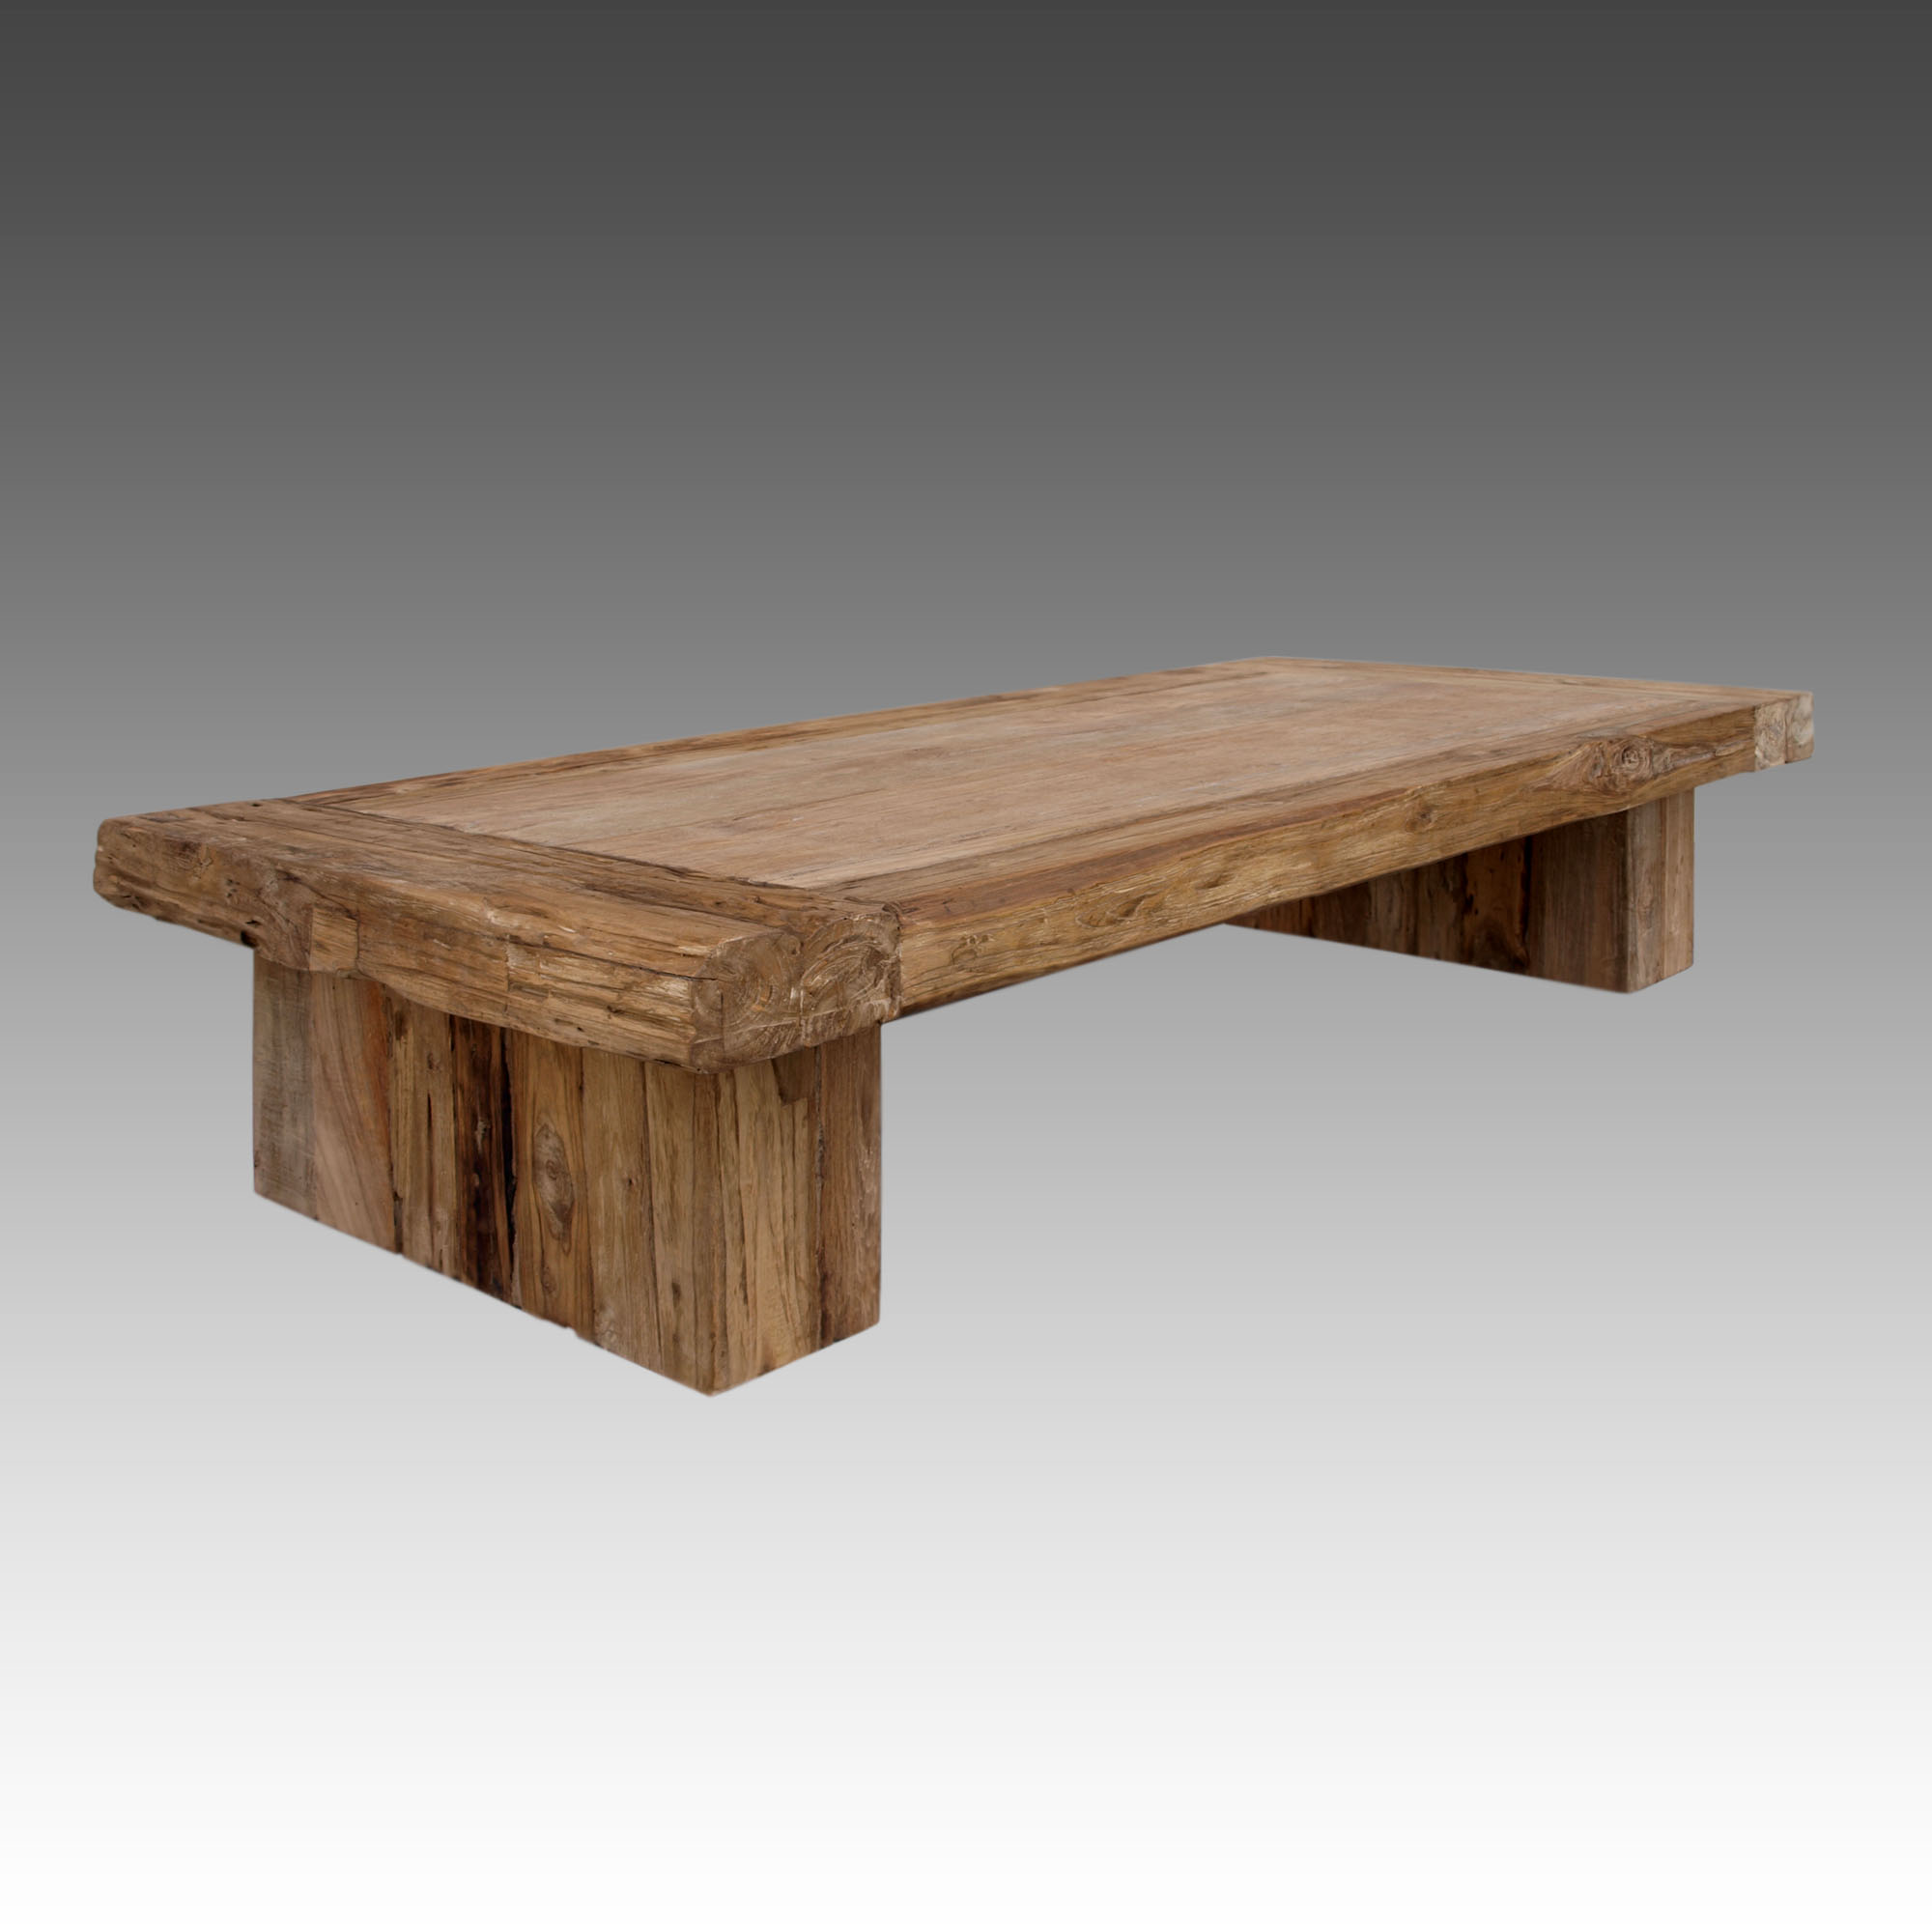 Contemporaryfurniture Com: Dois Rustic Coffee Table